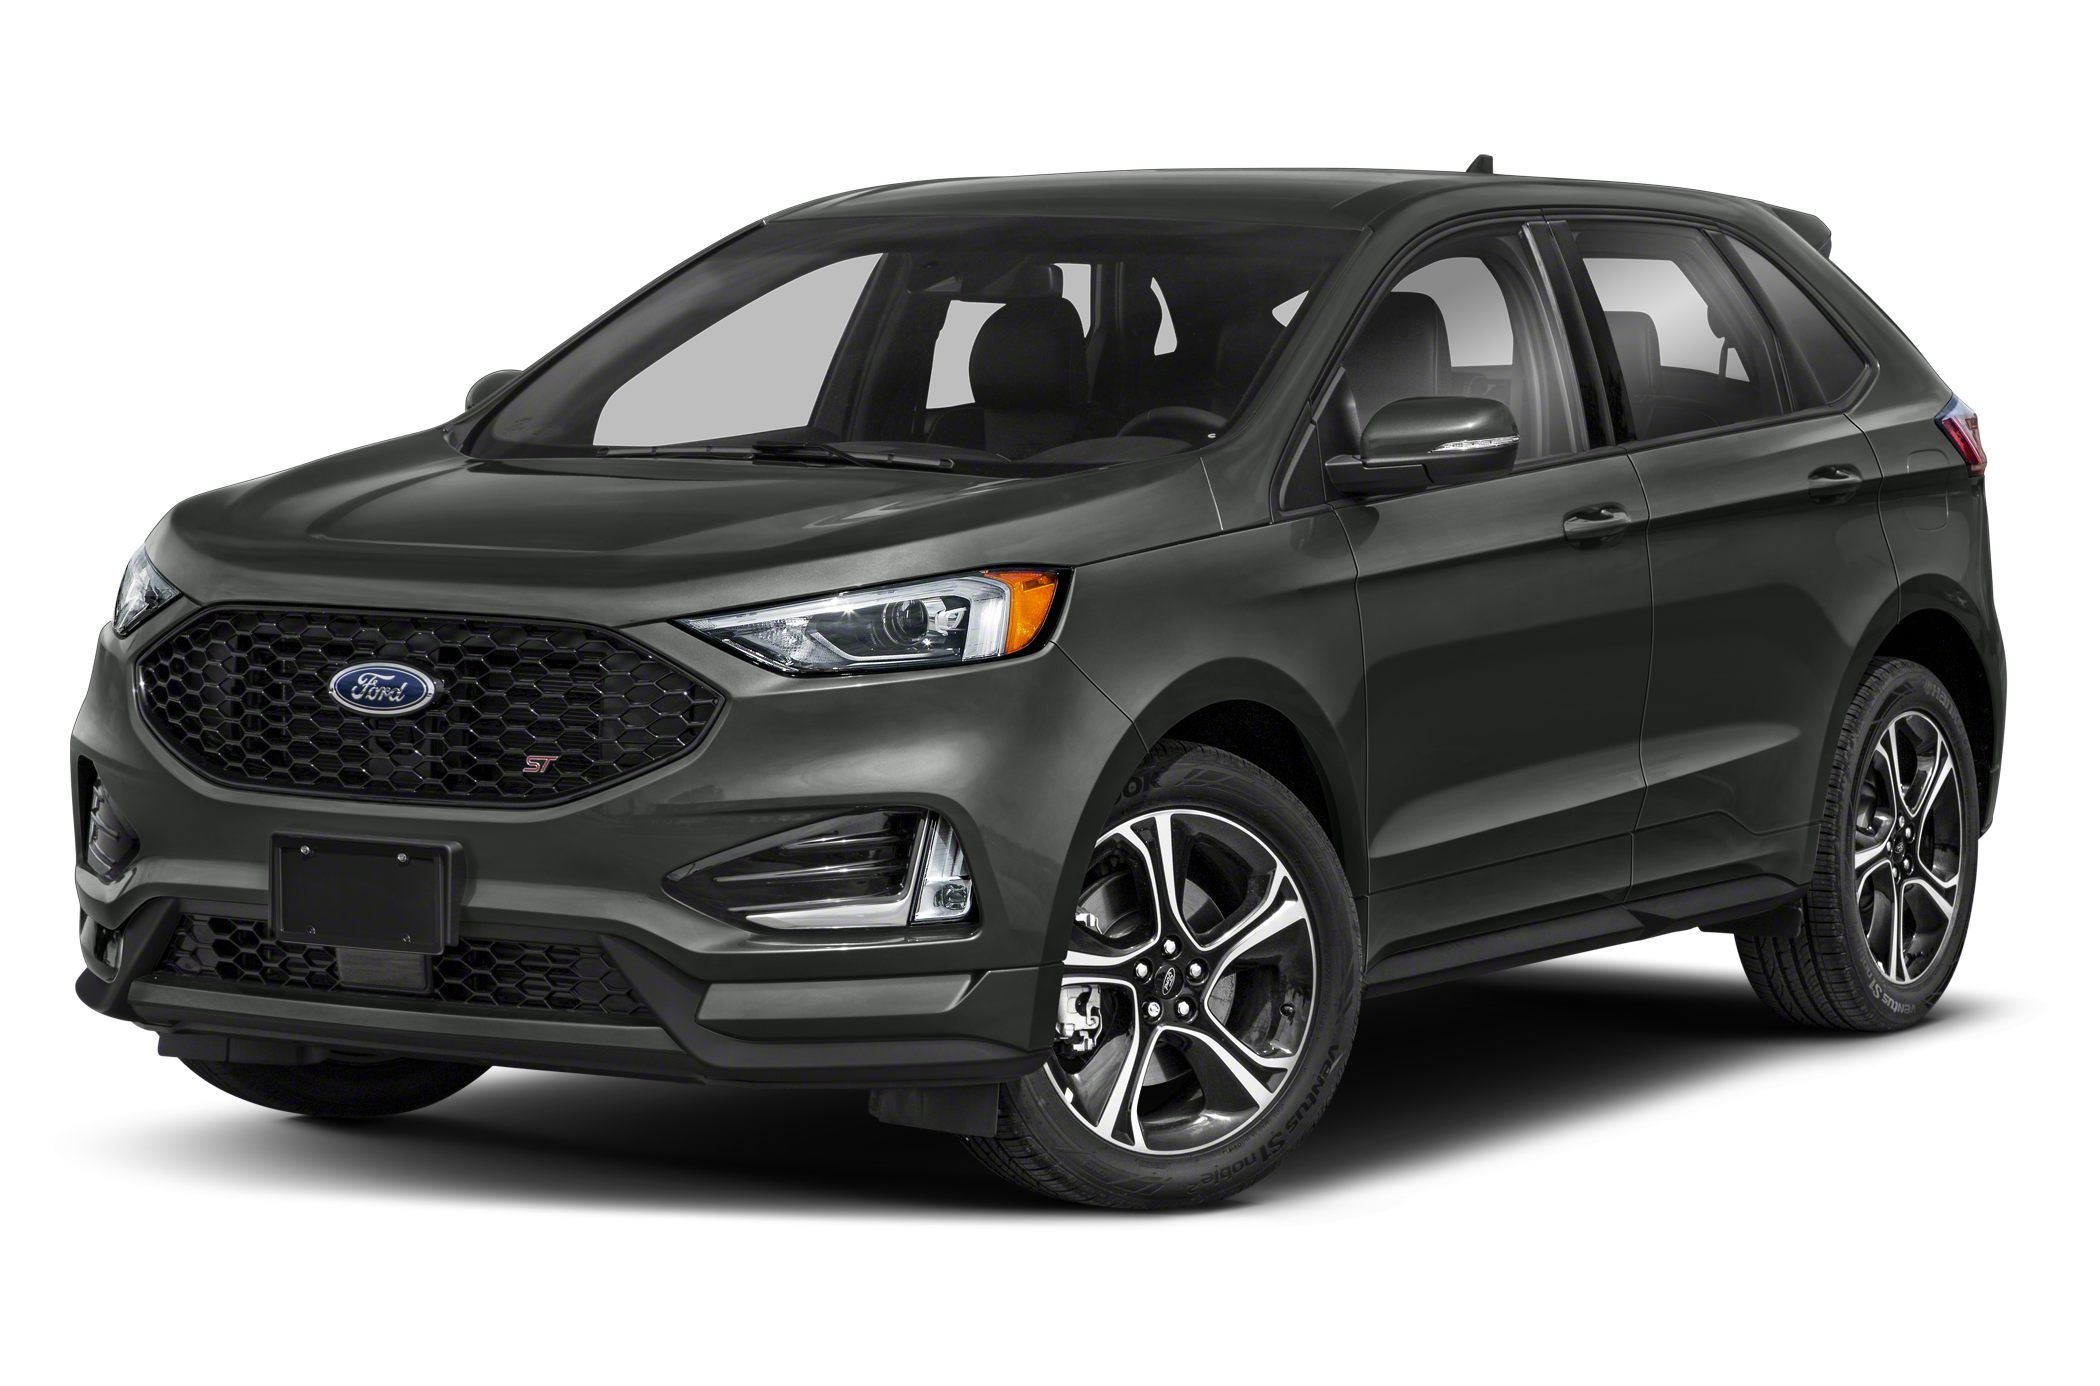 2020 Ford Edge St 4dr All Wheel Drive In 2020 Ford Edge Ford Edge Sport Ford Suv